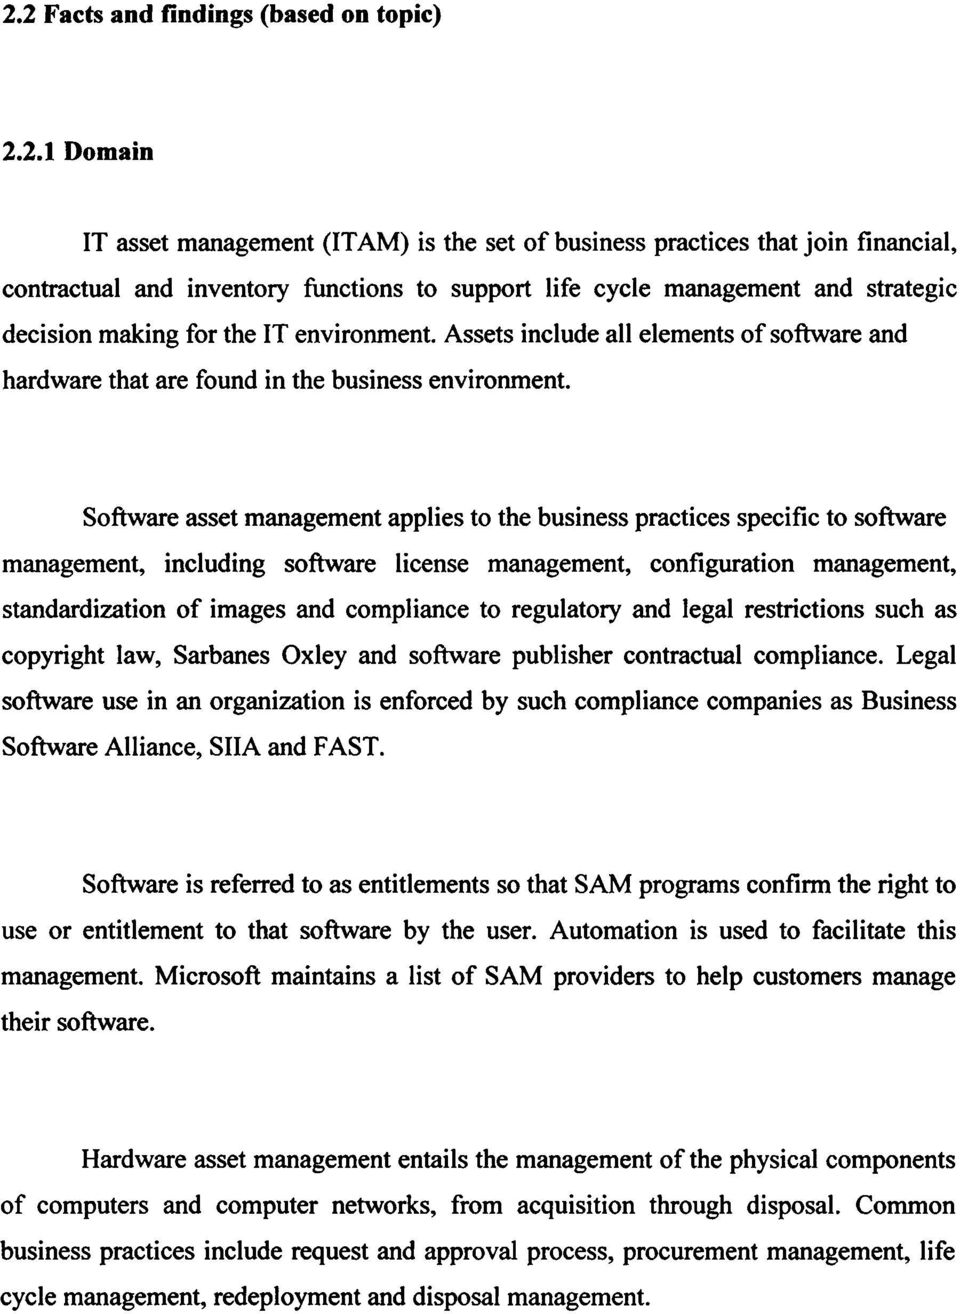 Software asset management applies to the business practices specific to software management, including software license management, configuration management, standardization of images and compliance